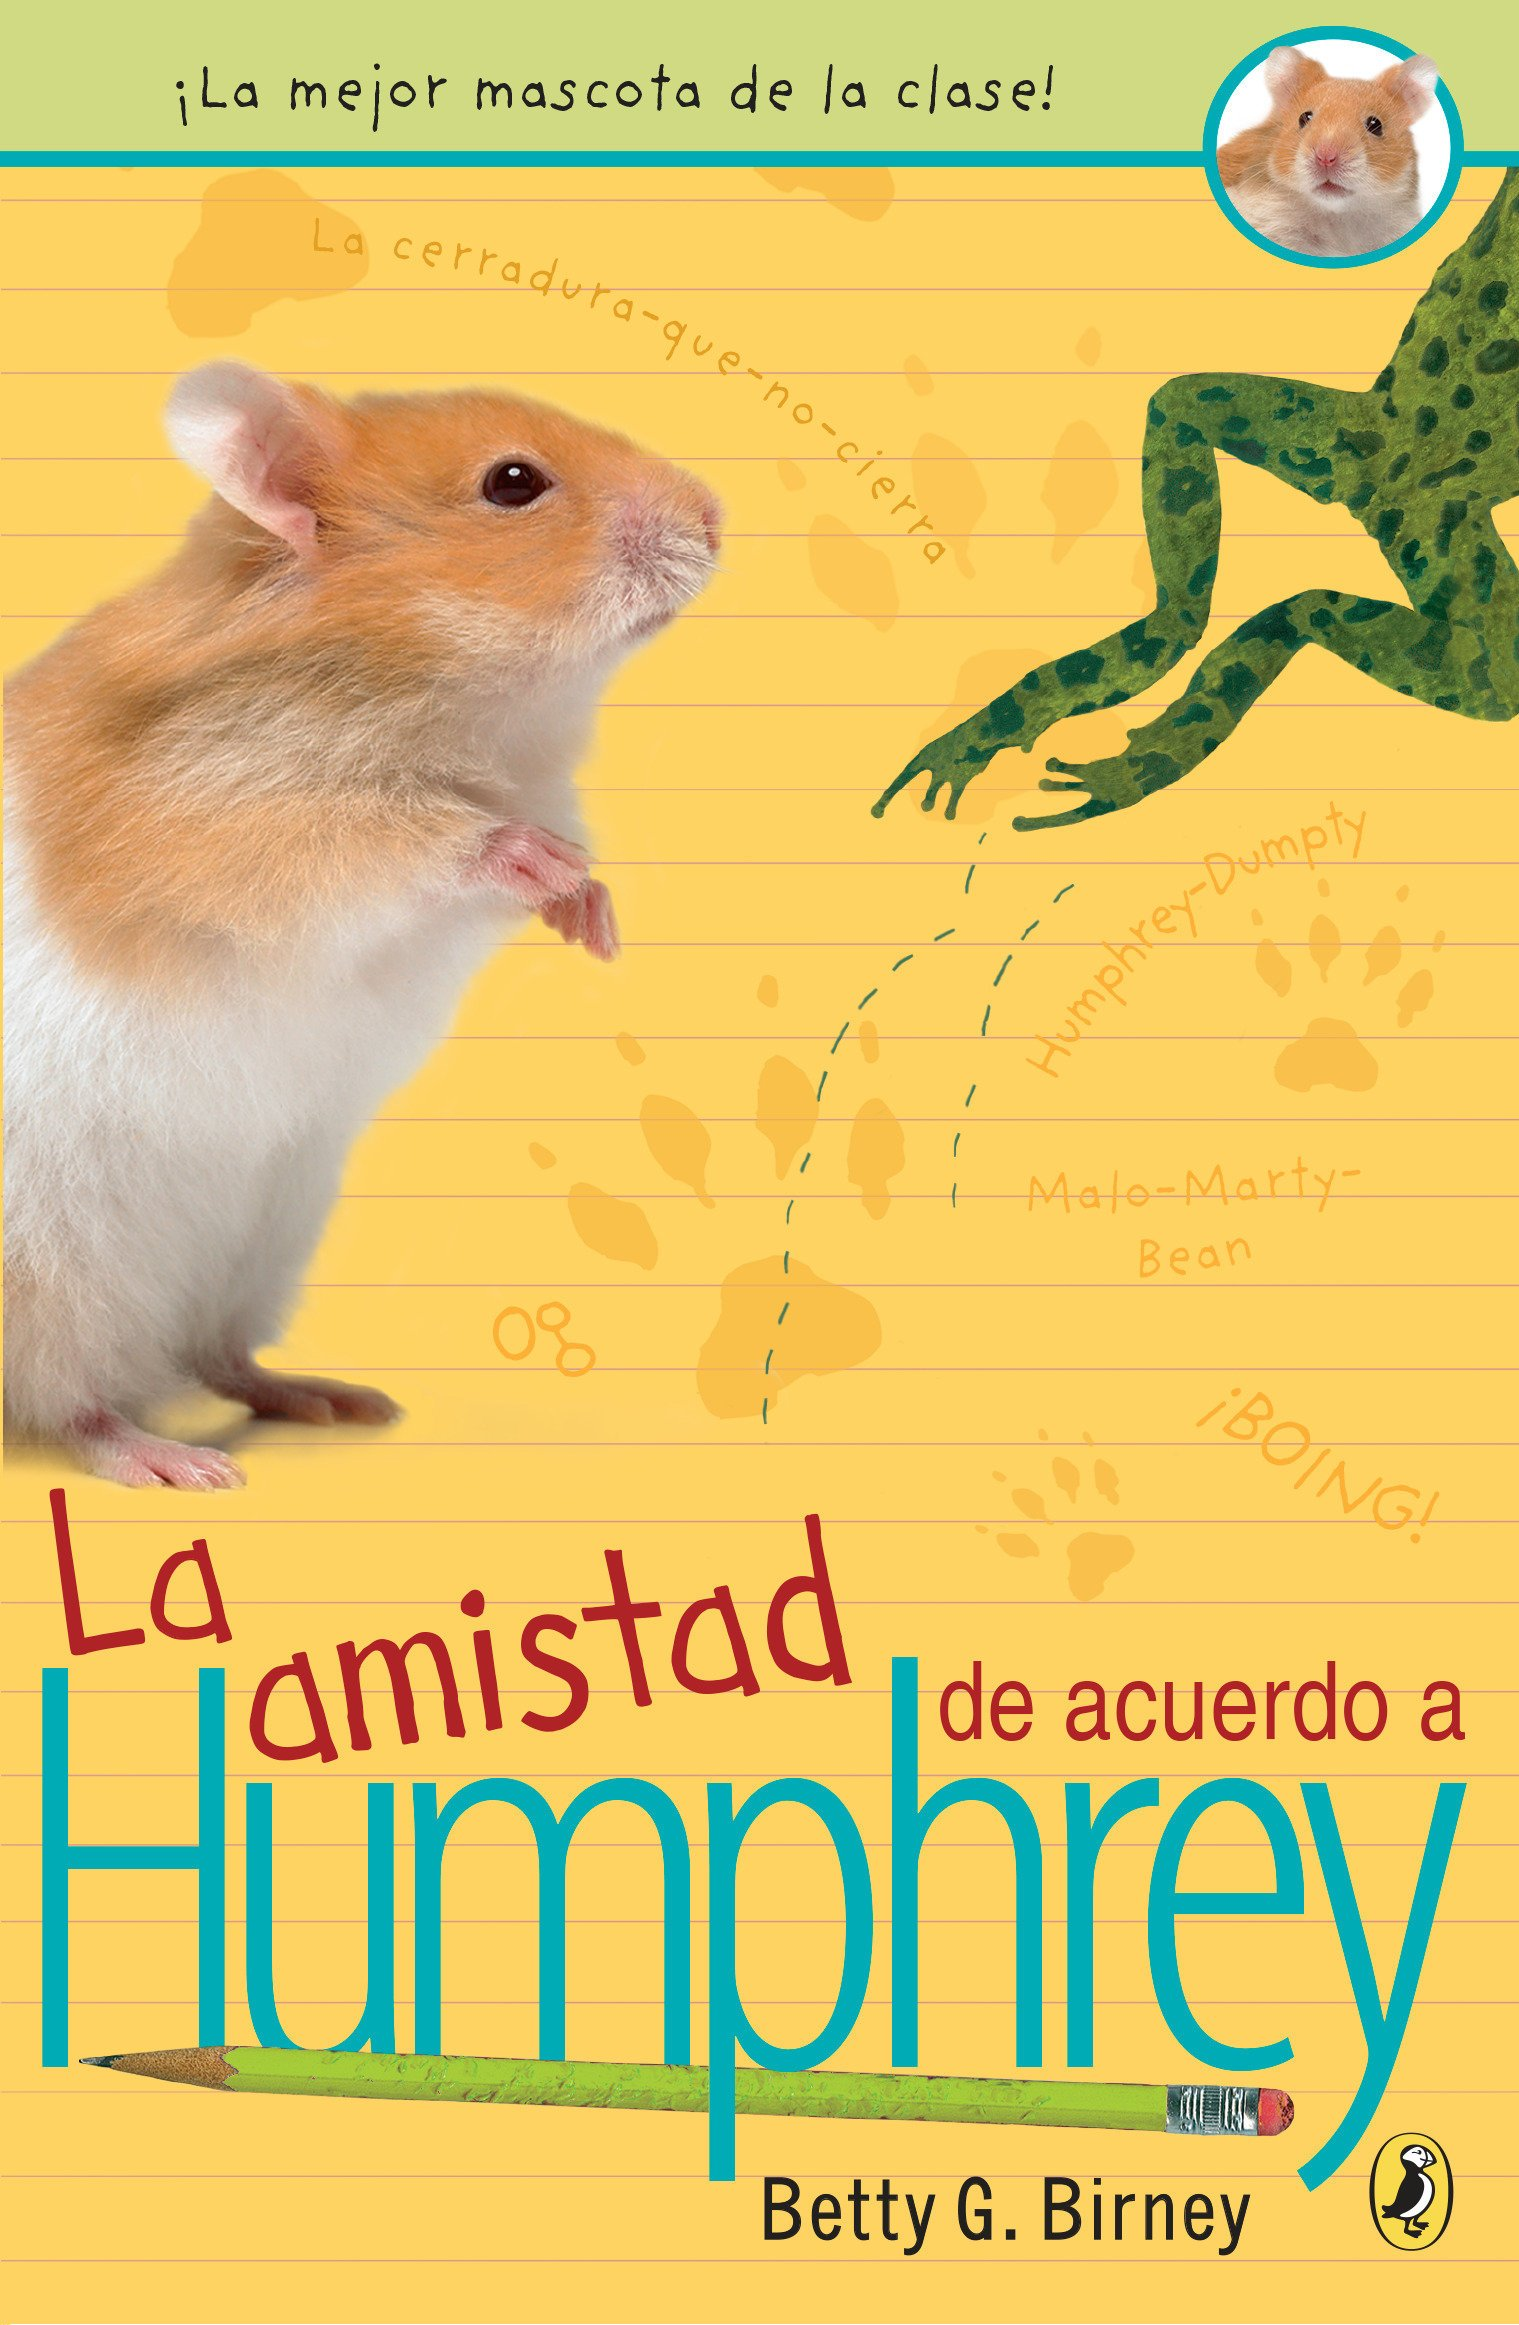 La Amistad de acuerdo a Humphrey (Spanish Edition): Betty G. Birney: 9780451480033: Amazon.com: Books